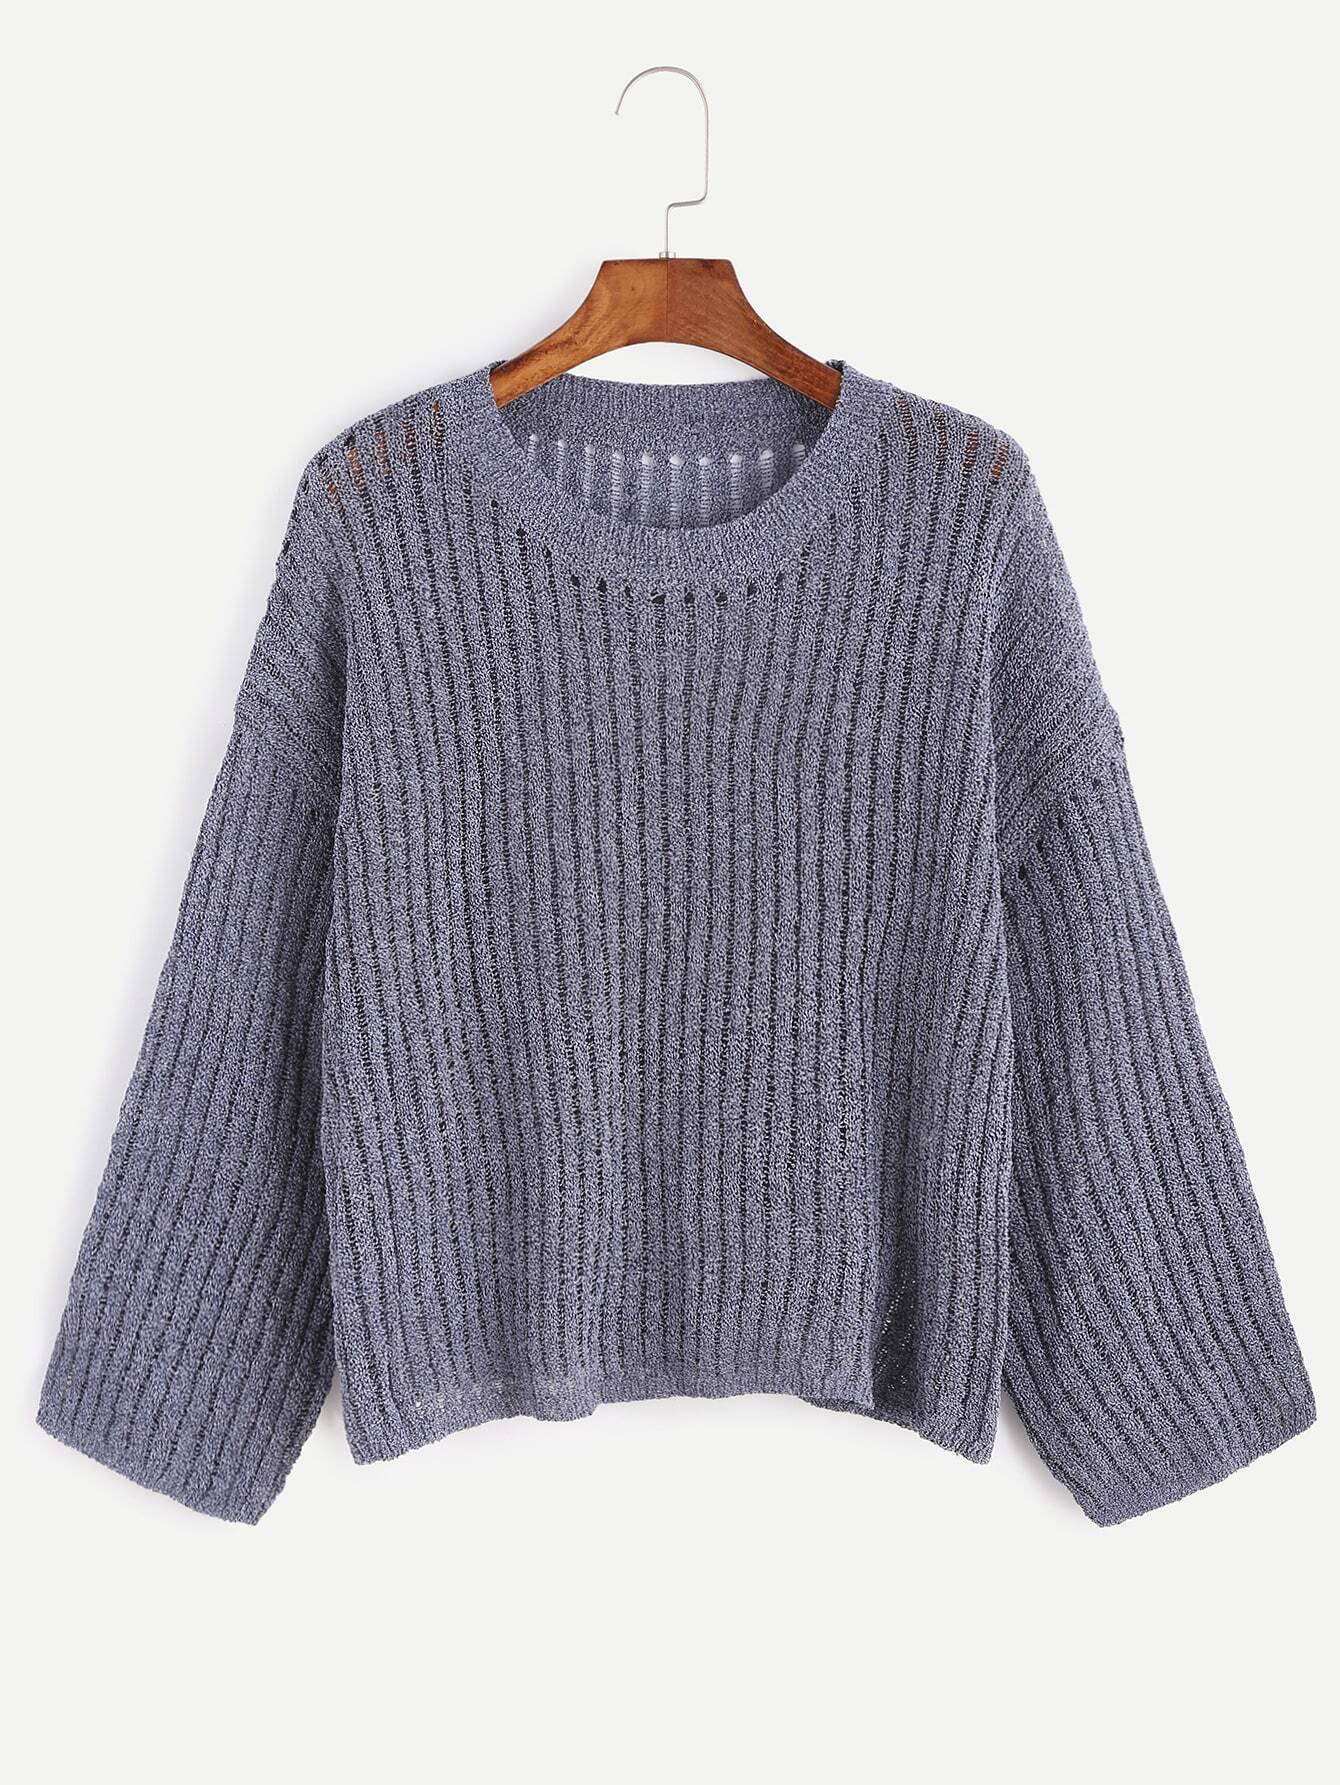 Dropped Shoulder Seam Ribbed Knit Sweater RKNI161017105